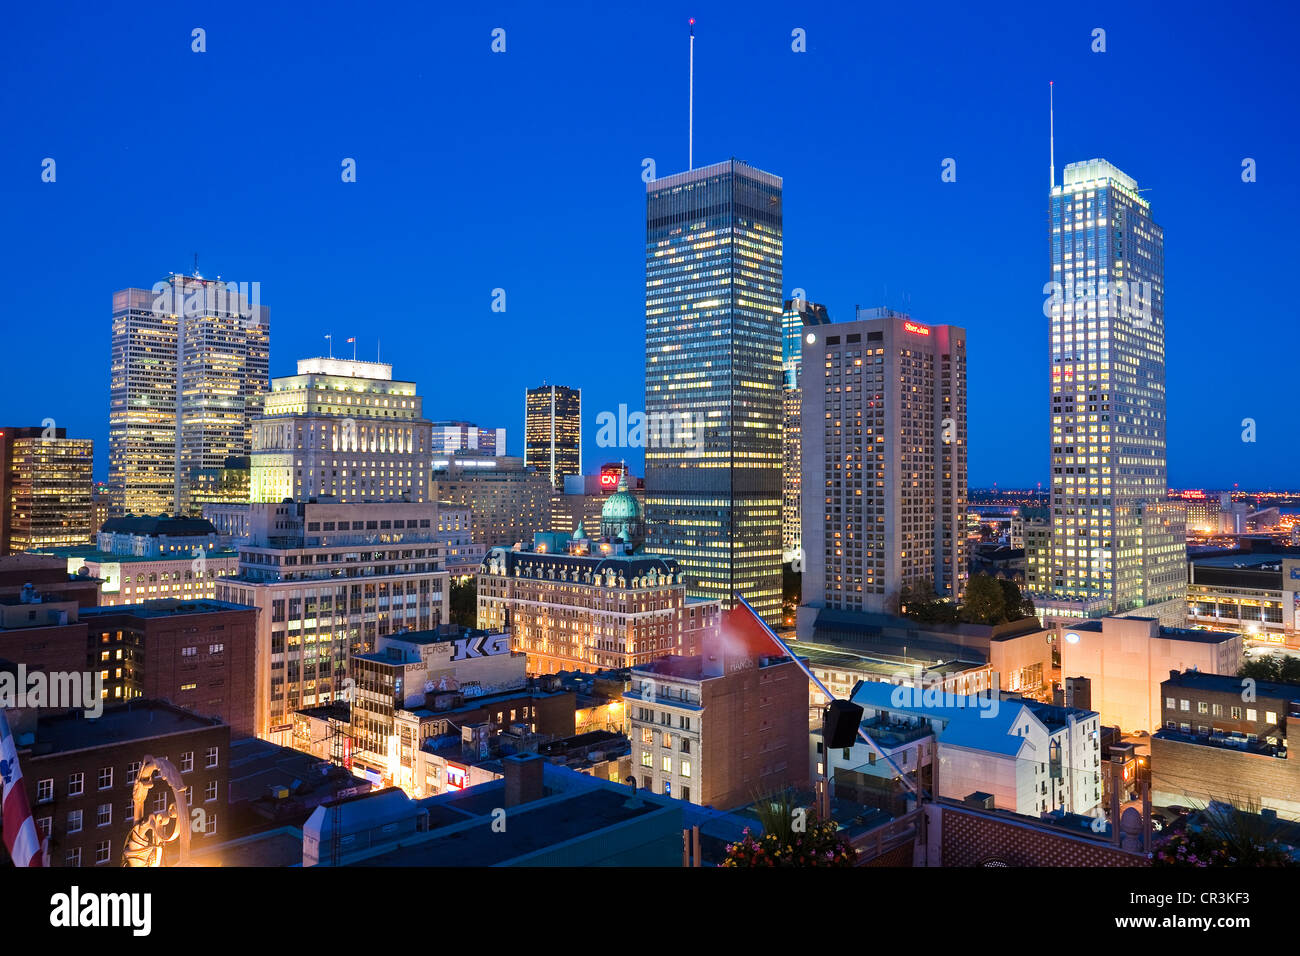 Canada, Quebec Province, Montreal, terrace of the Magnetic Bar and Restaurant on the 20th stage of Hotel de la Montagne - Stock Image